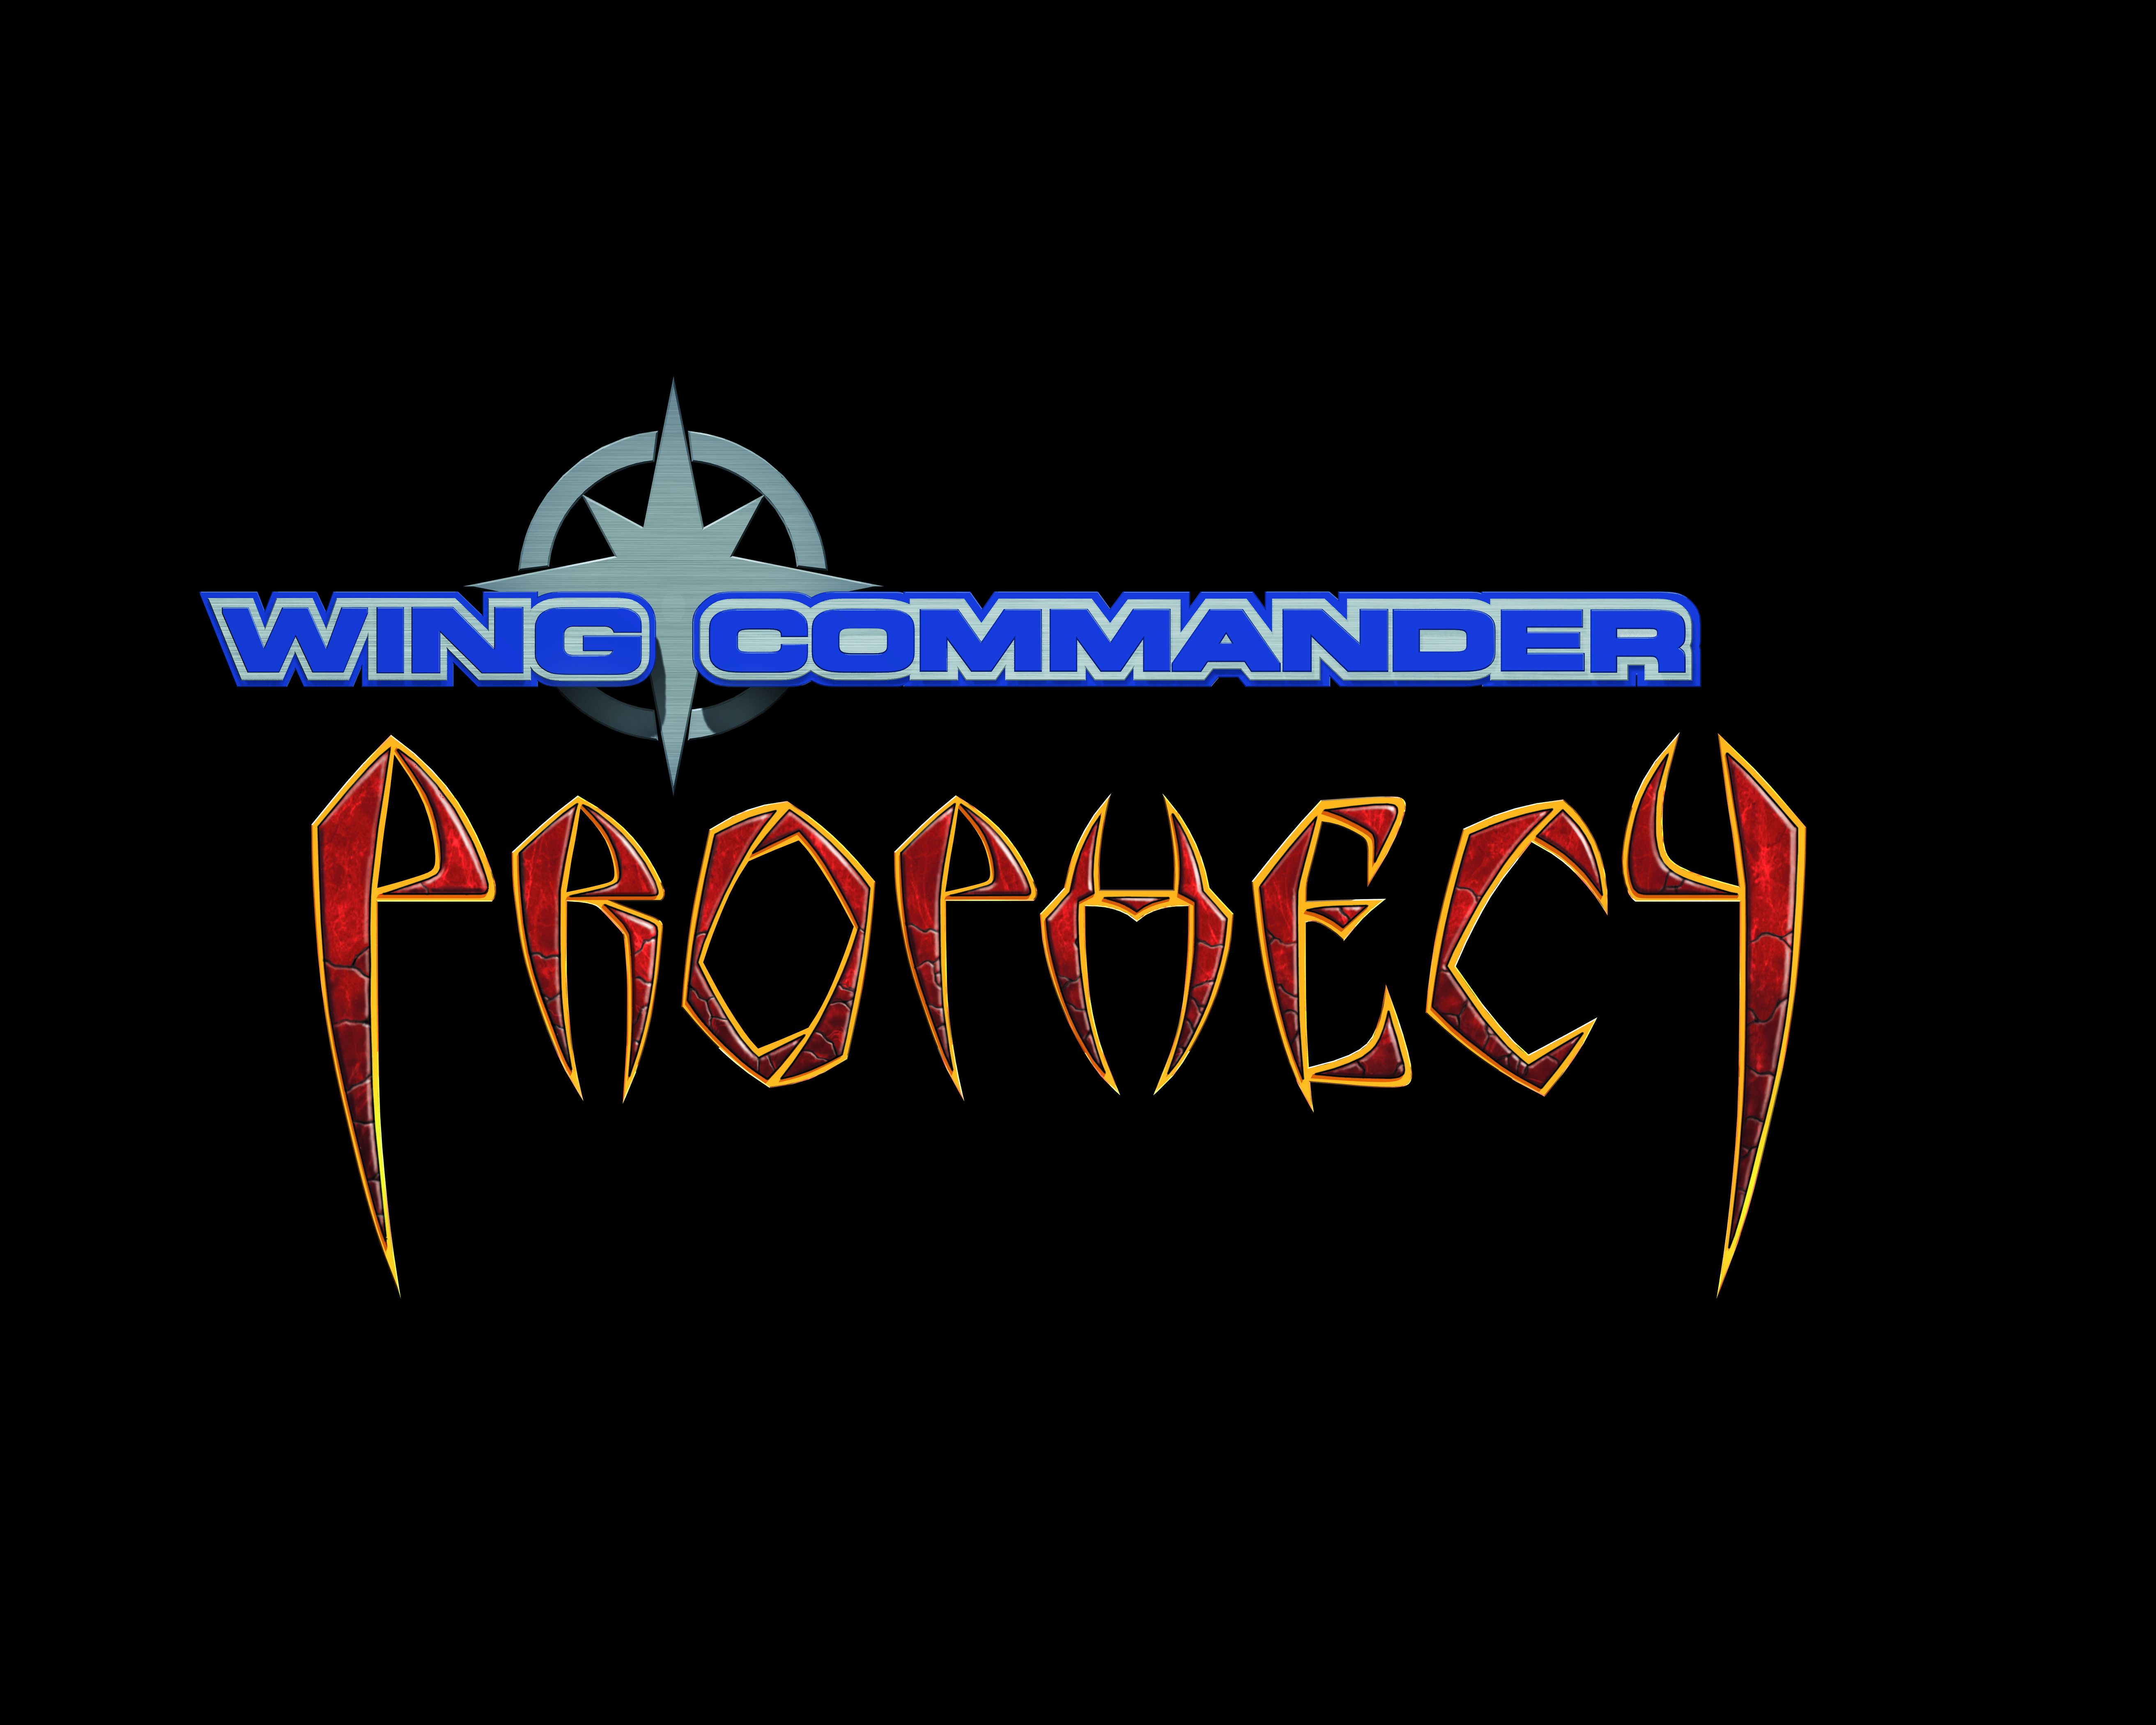 Making the games wing commander prophecy logos for Wing commander prophecy